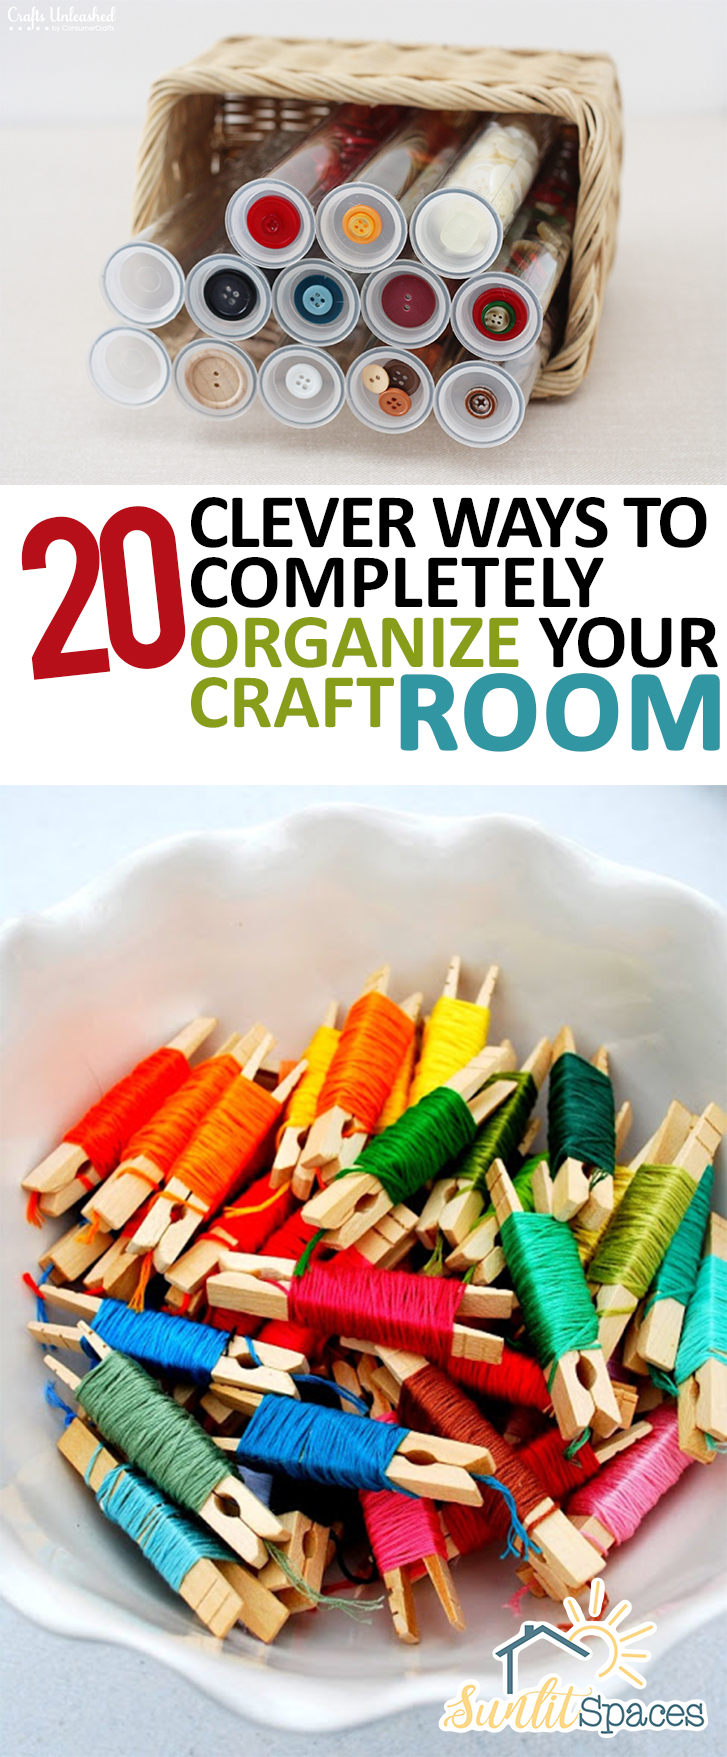 How to Organize Your Craft Room, Craft Room Organization, Craft Room Organization Ideas, Organization Ideas for the Home, Craft Room, Dream Craft Room, Organization, Home Organization, Popular Pin